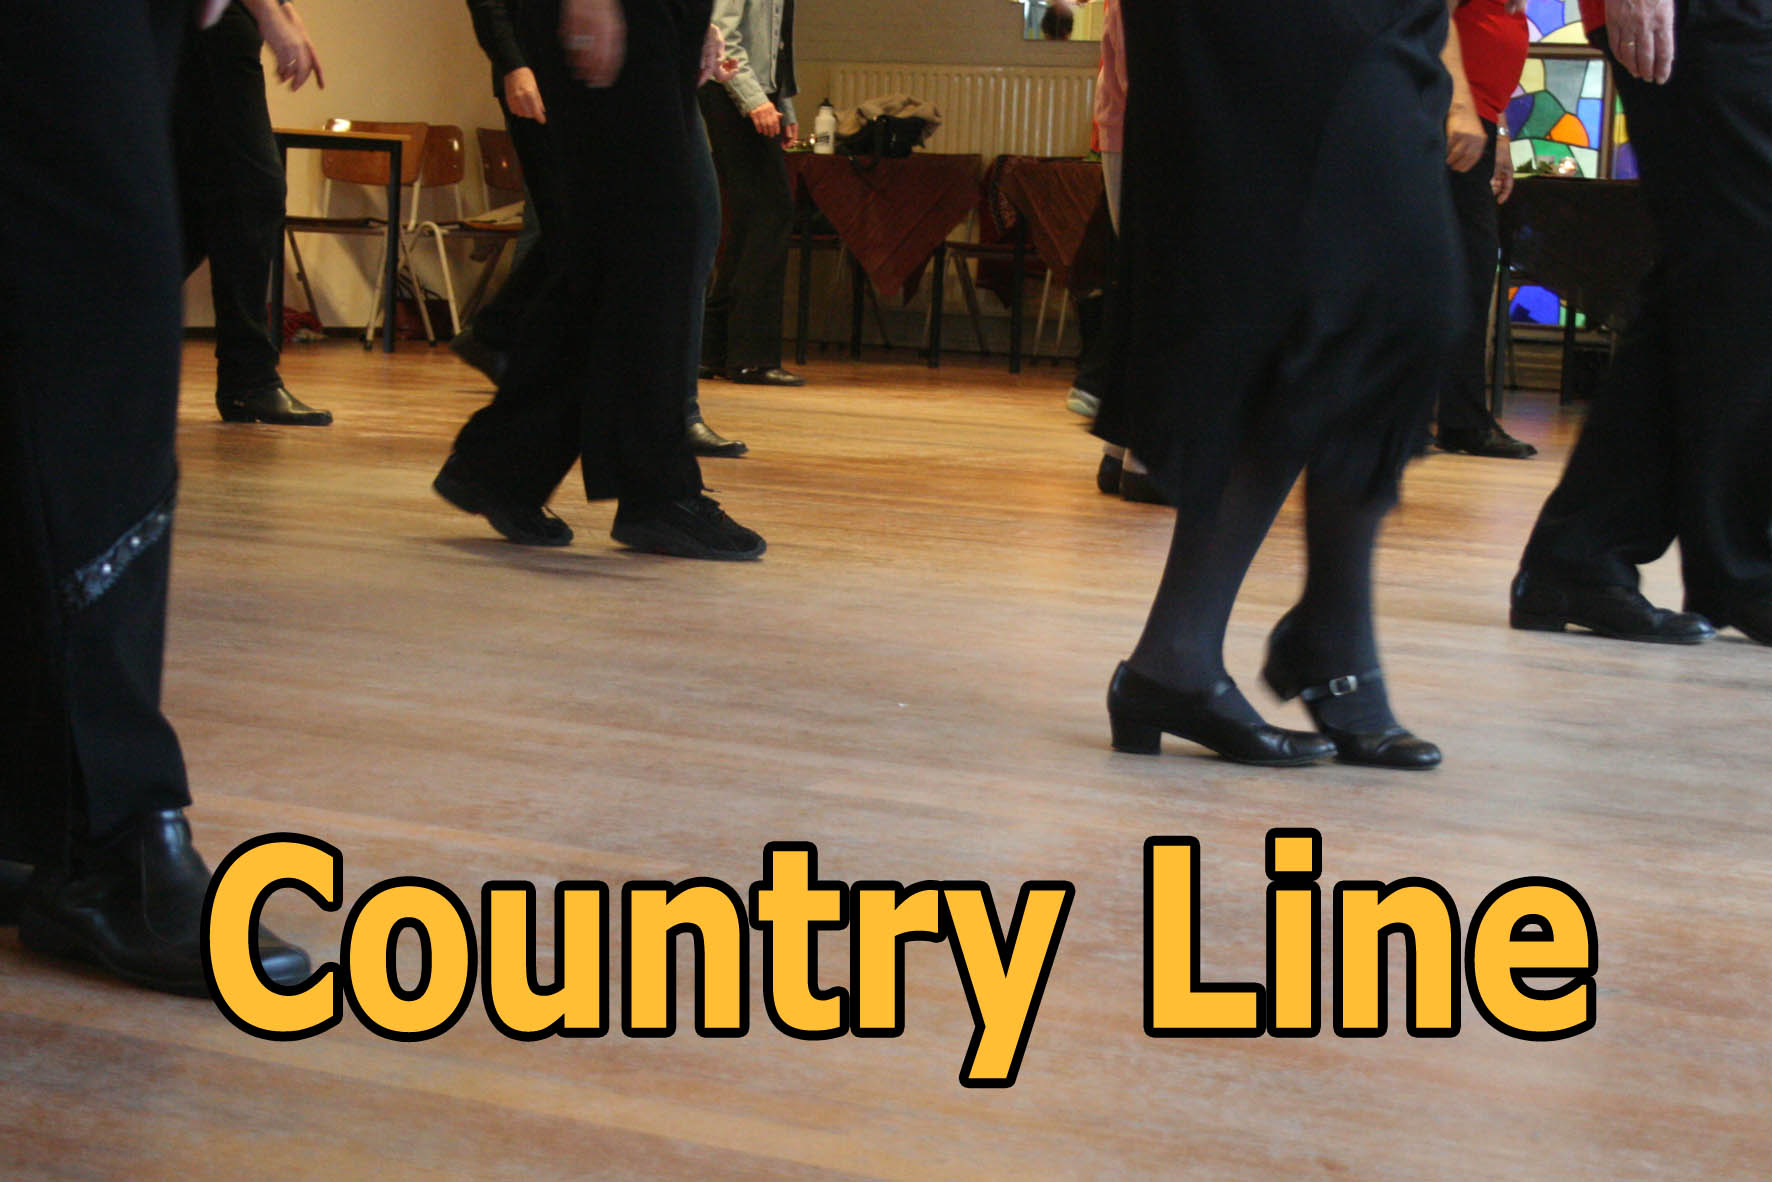 countryline